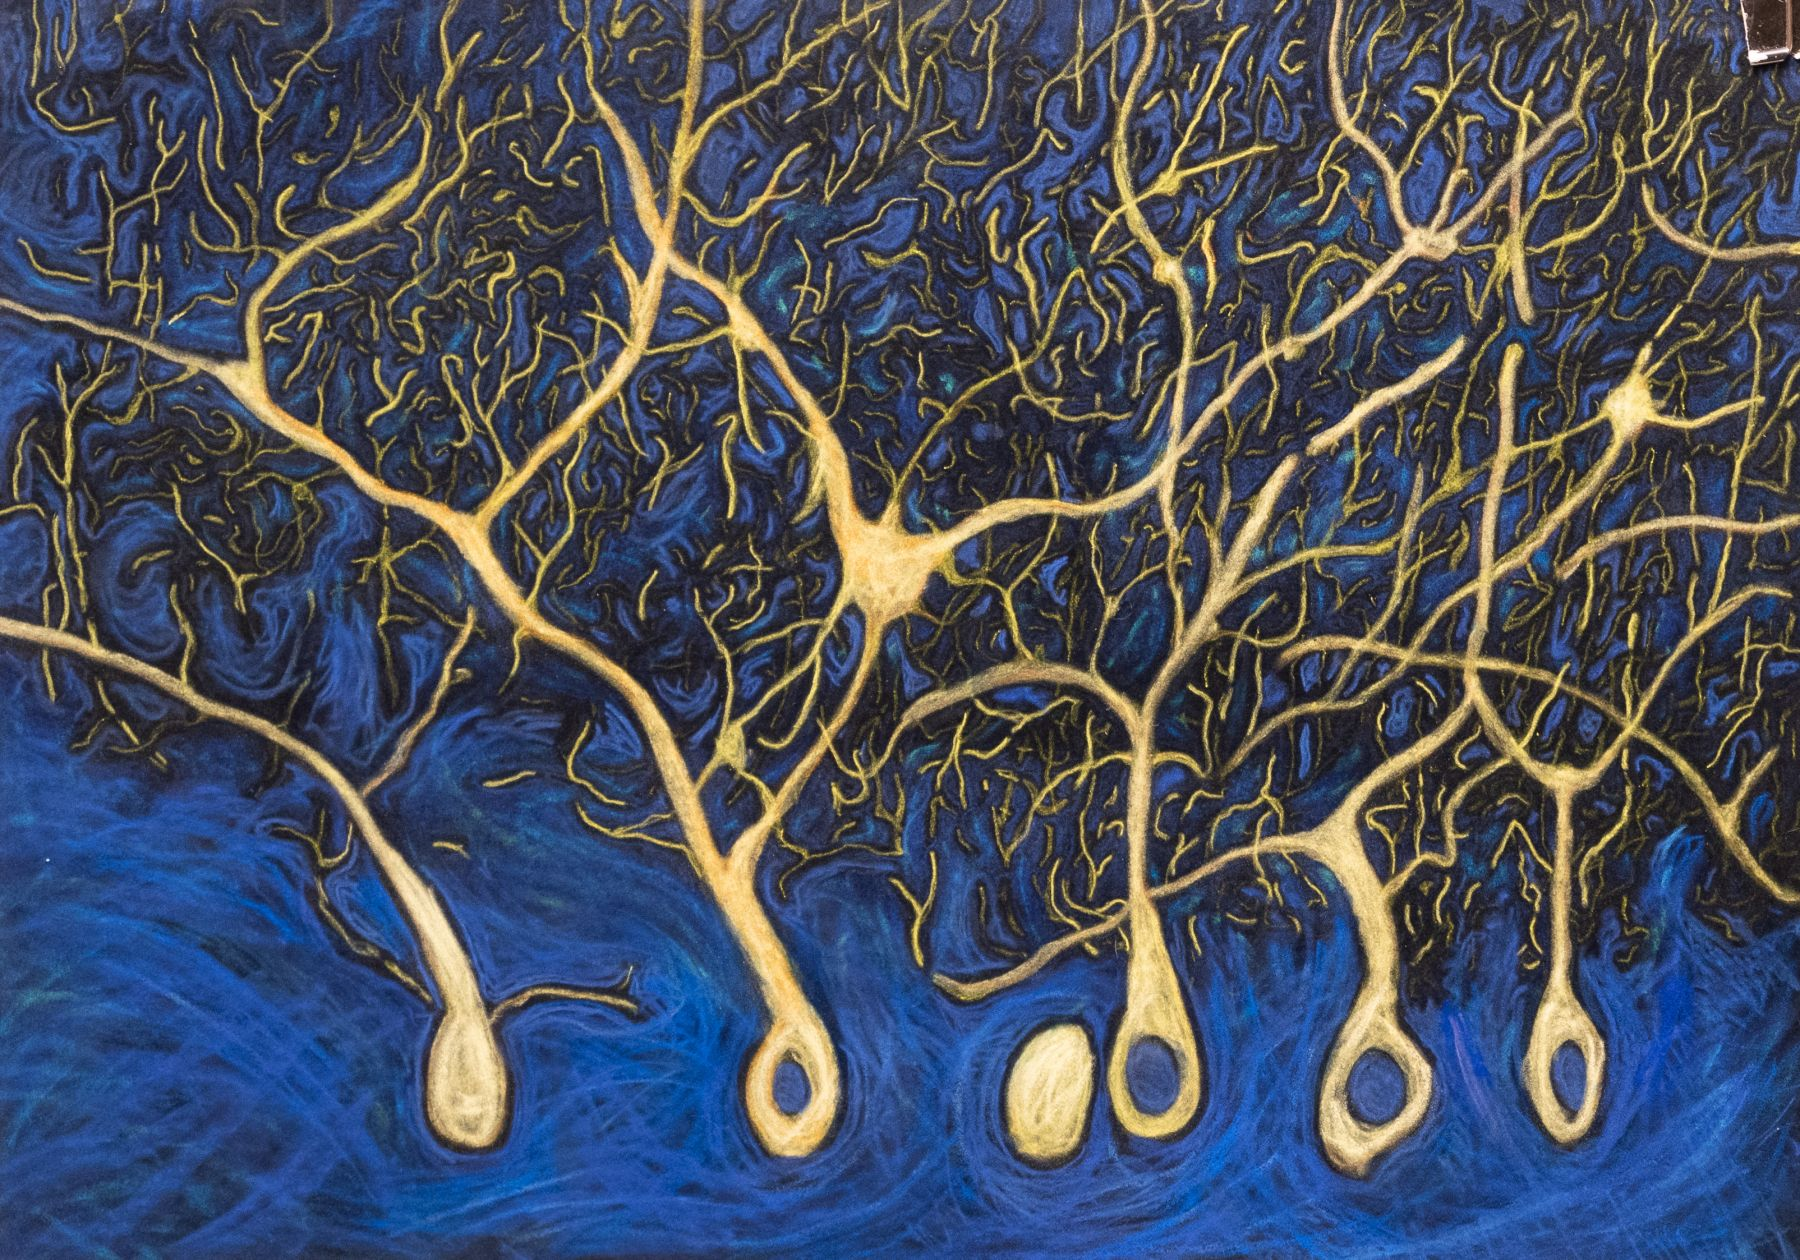 Jody Rasch, Thought - Neurons